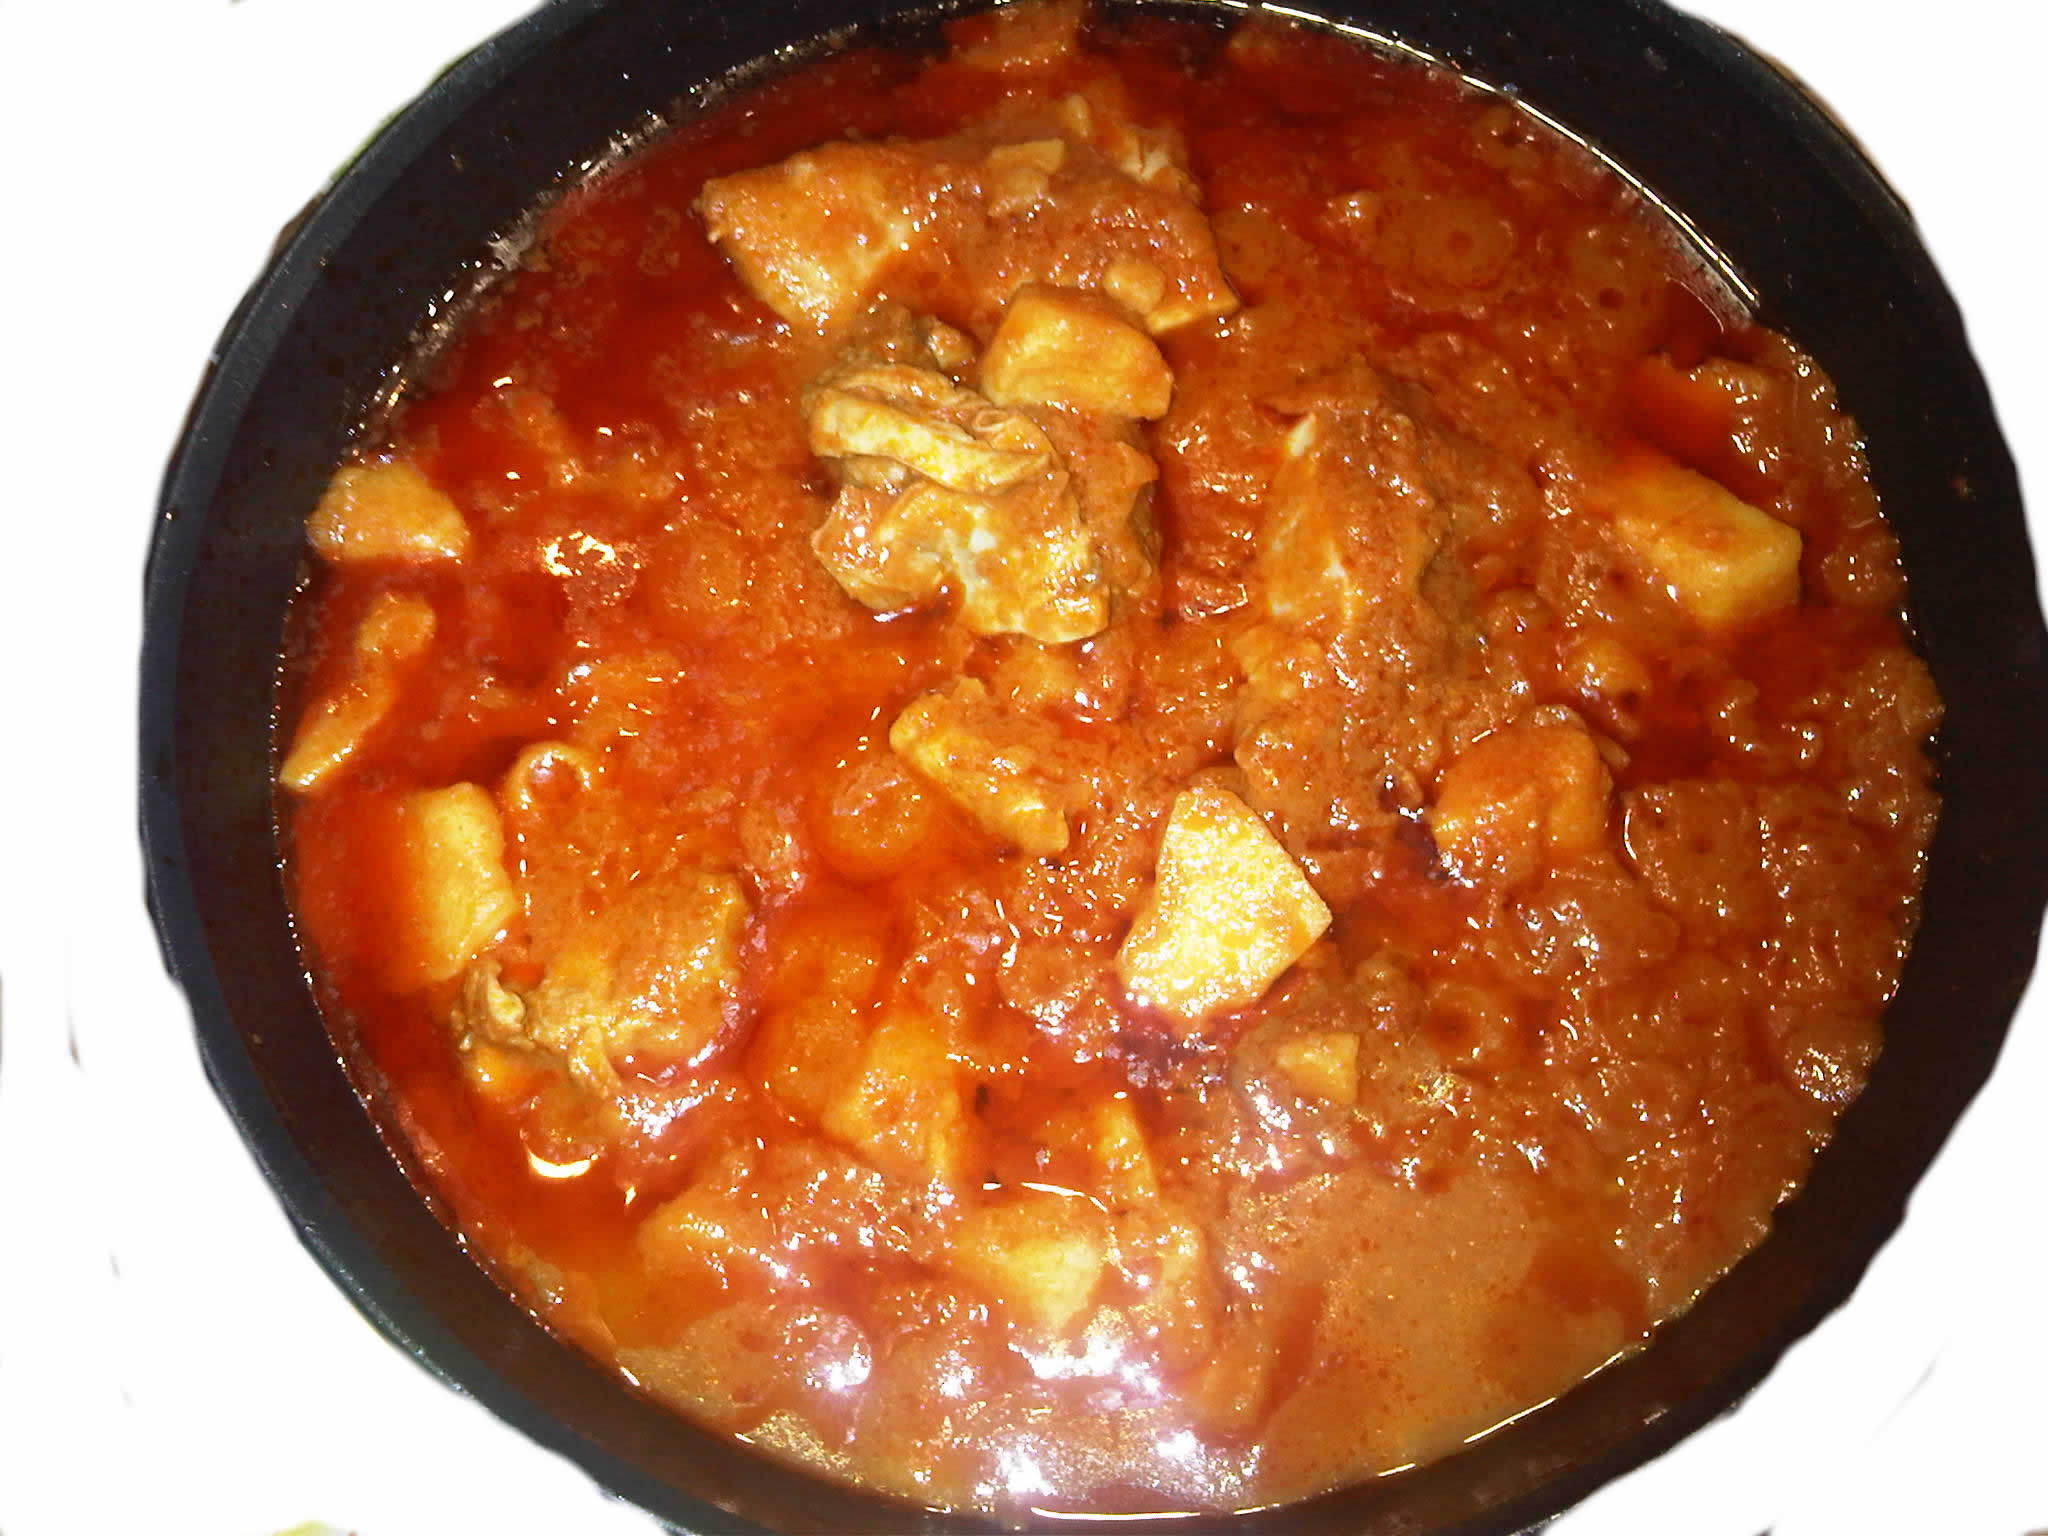 My Stew And Potatoes Creation.